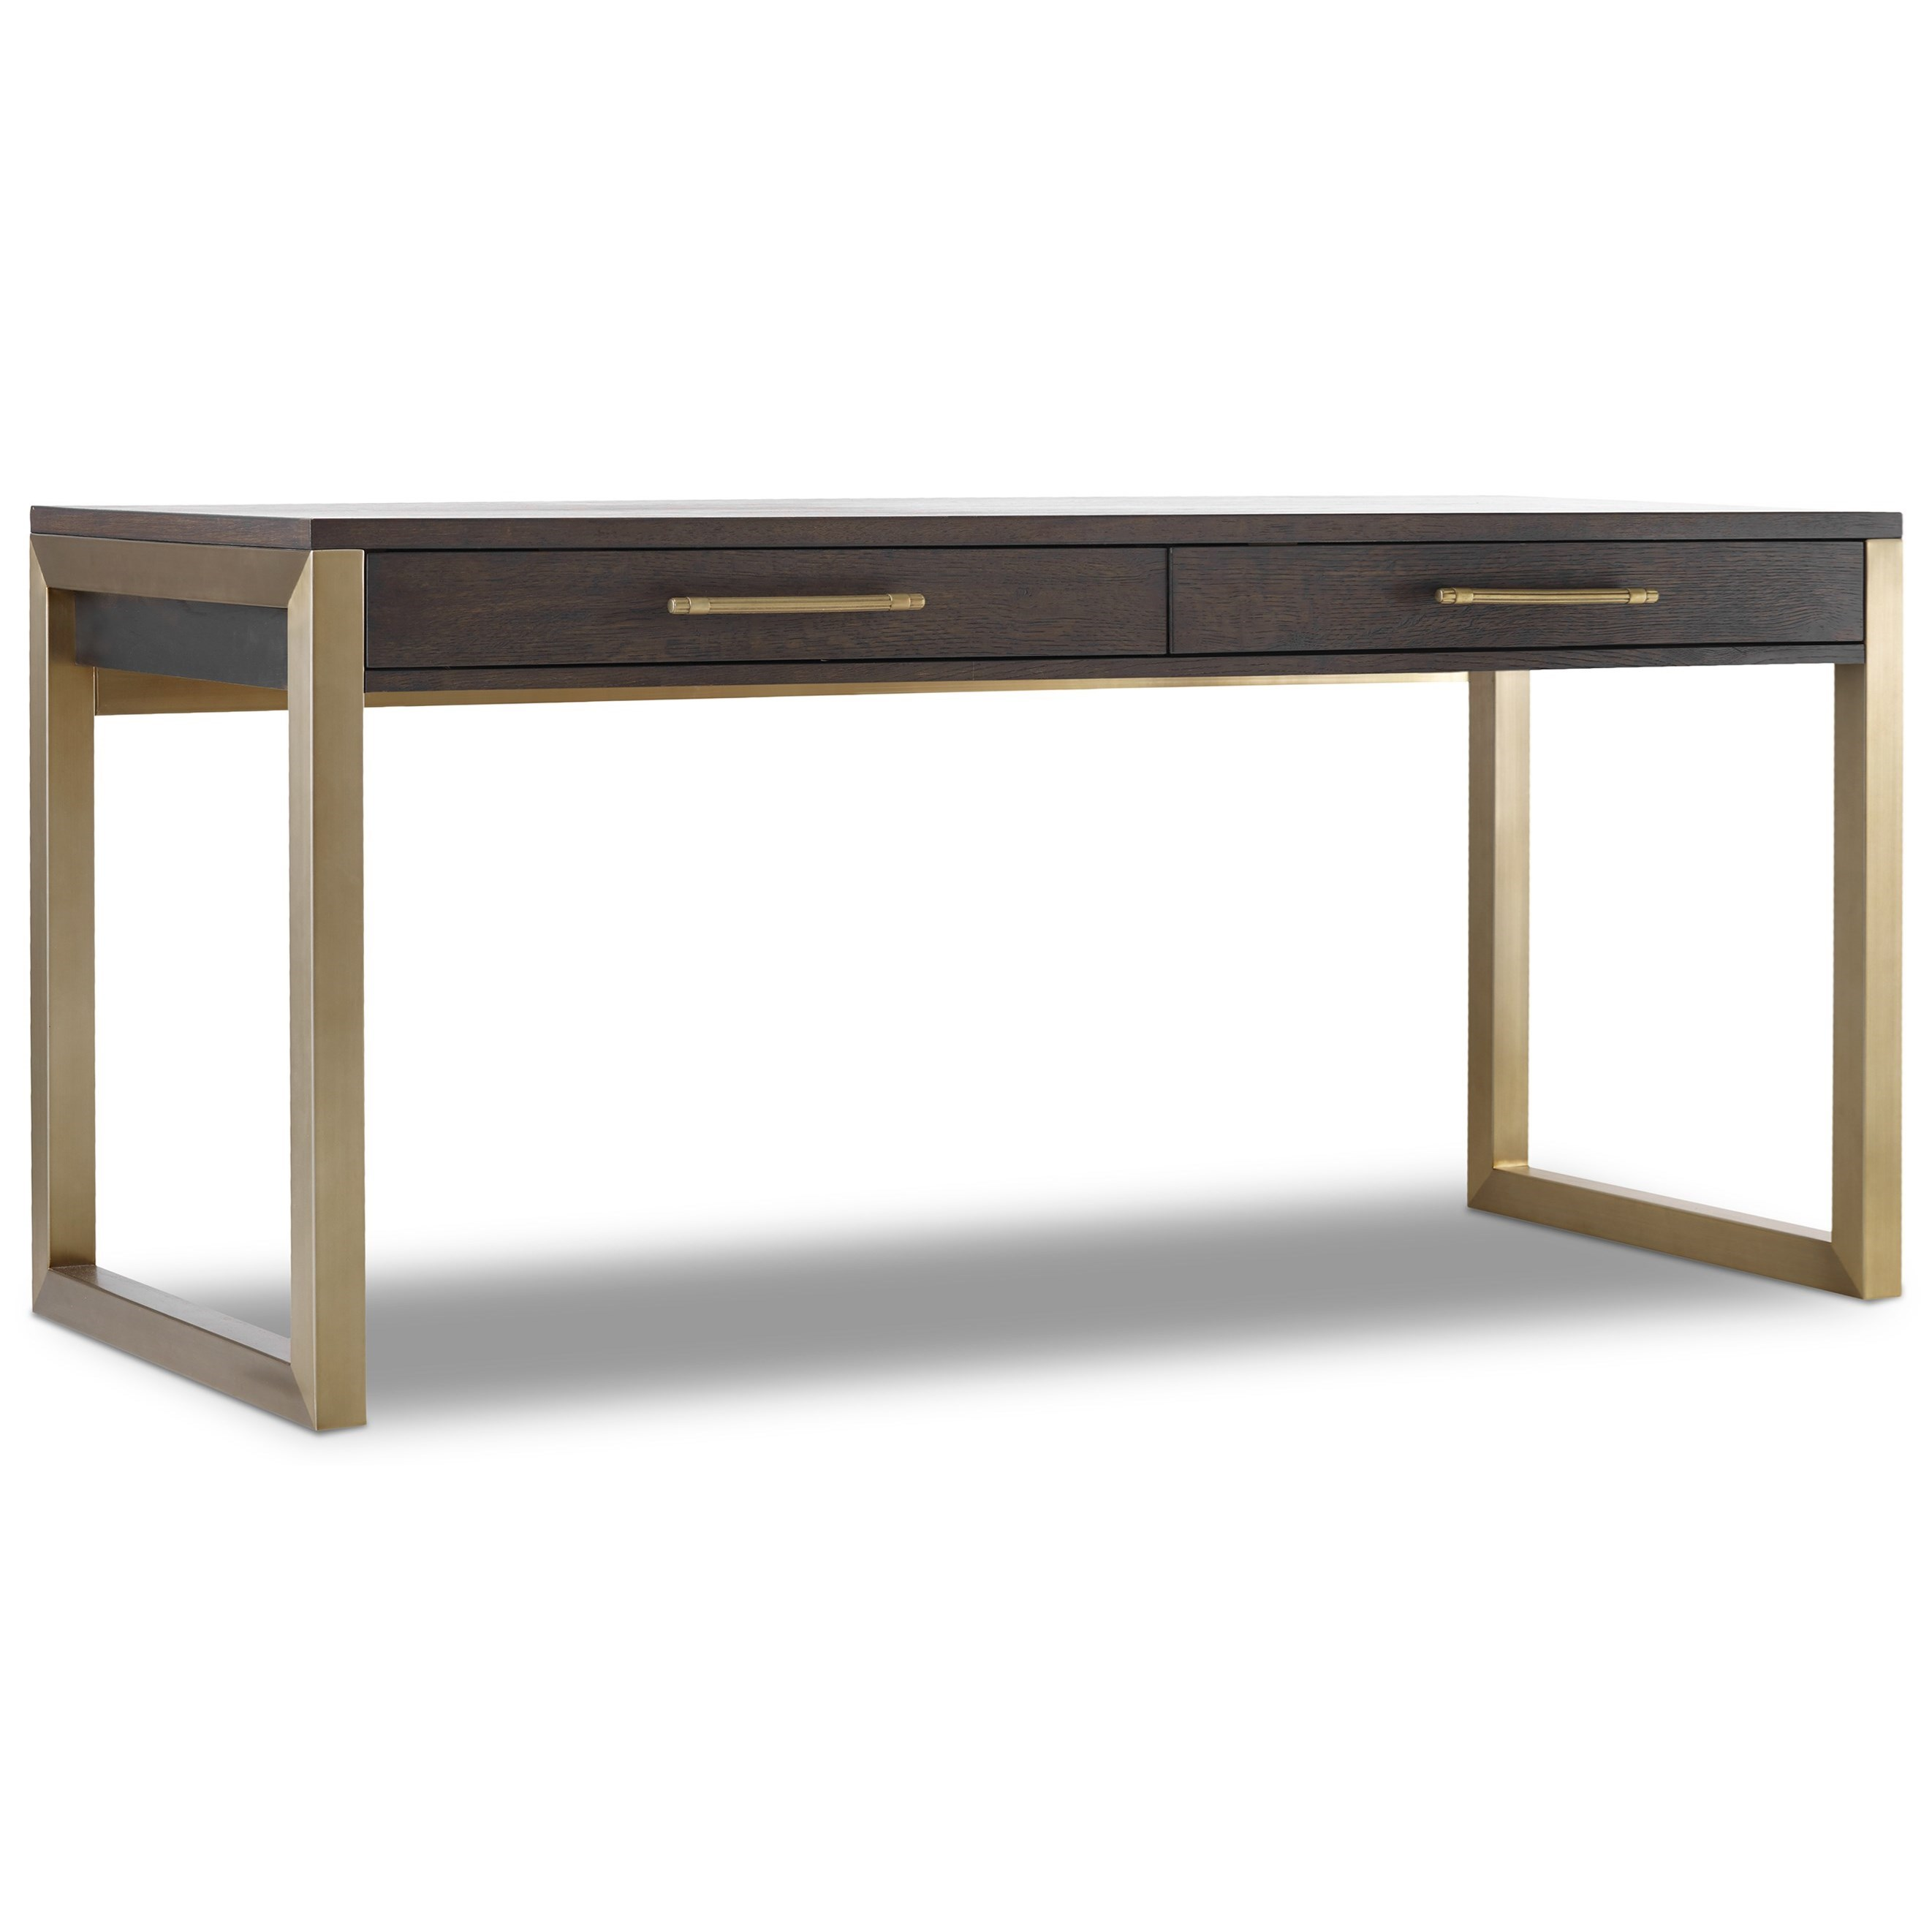 Hooker Furniture Curata 1600 10468 Dkw Short Modern Wooden